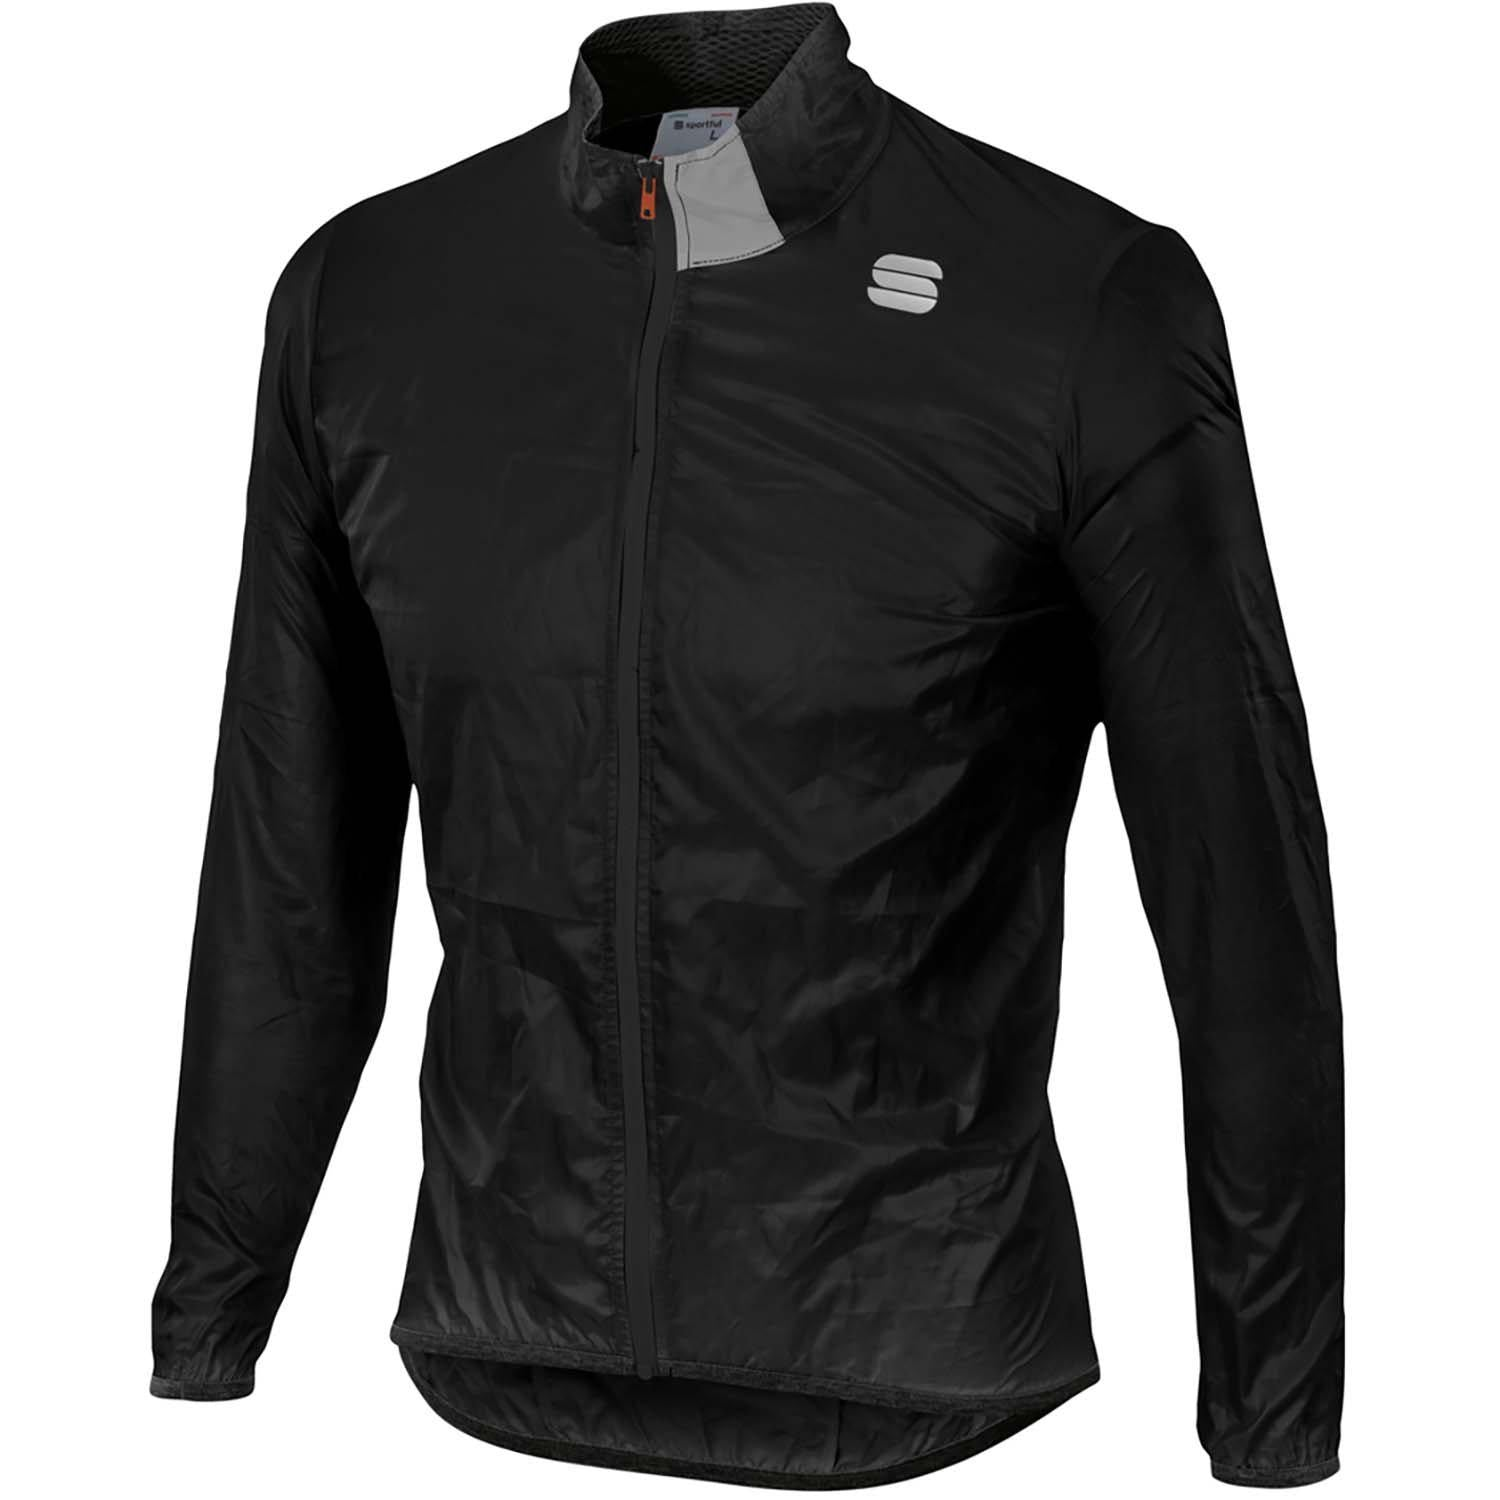 Sportful-Sportful Hot Pack Easylight Jacket-Black-S-SF020260022-saddleback-elite-performance-cycling